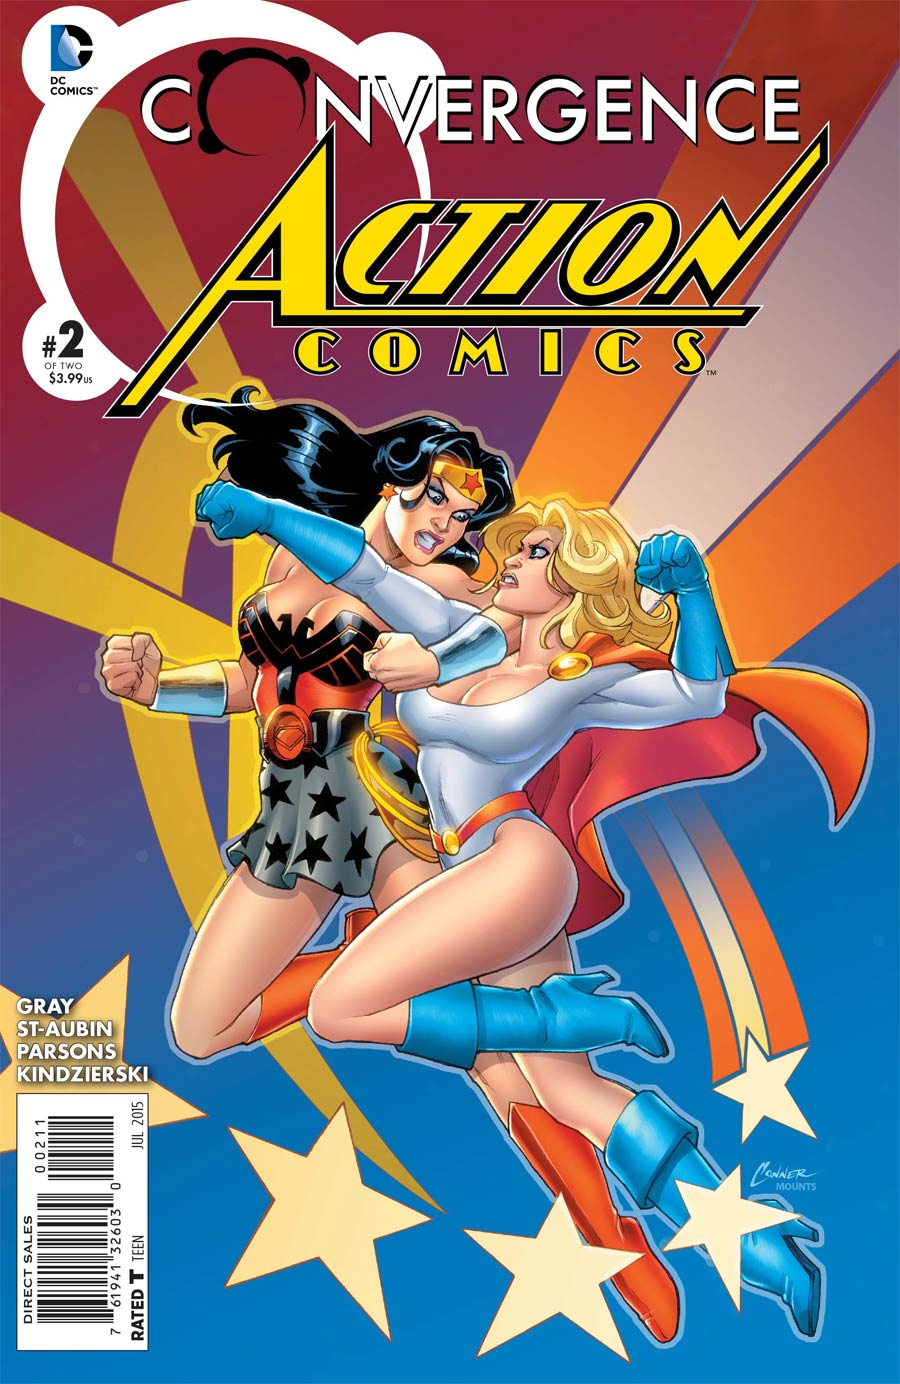 Convergence: Action Comics #2